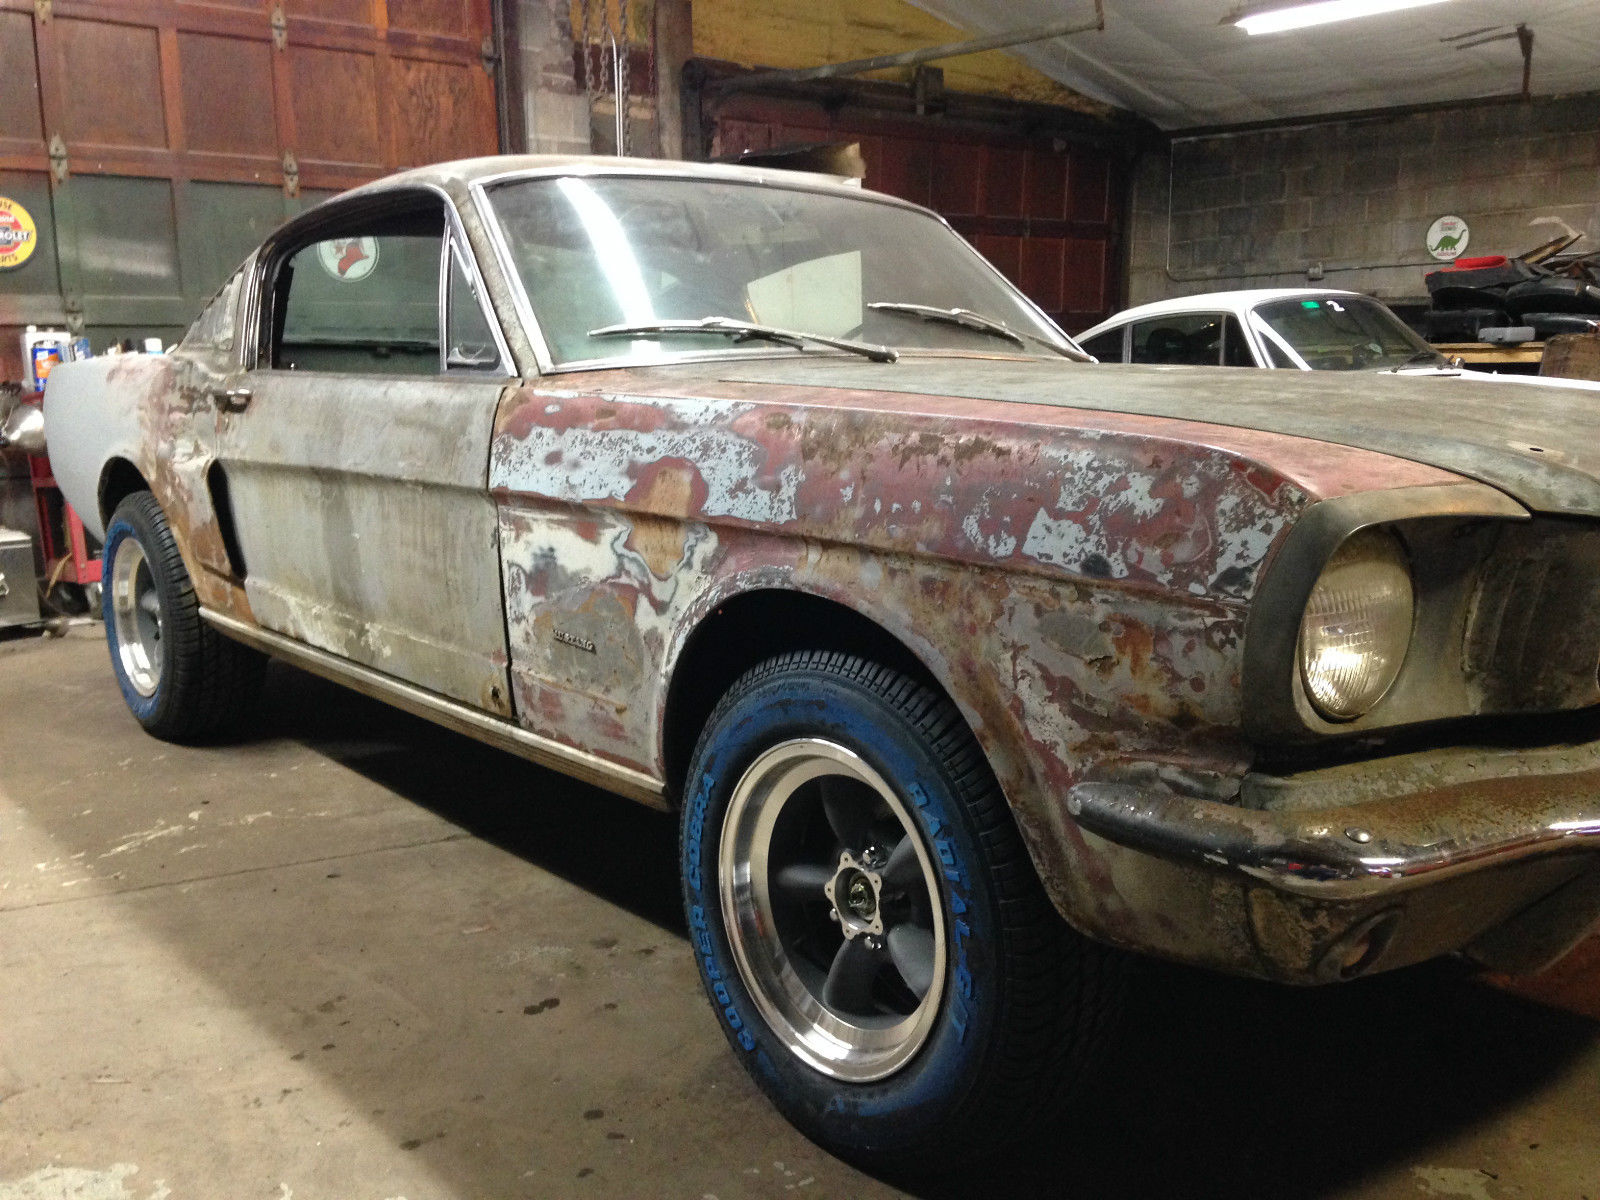 1965-ford-mustang-22-fastback-partial-restoration-alabama-barn-find-solid-car-2